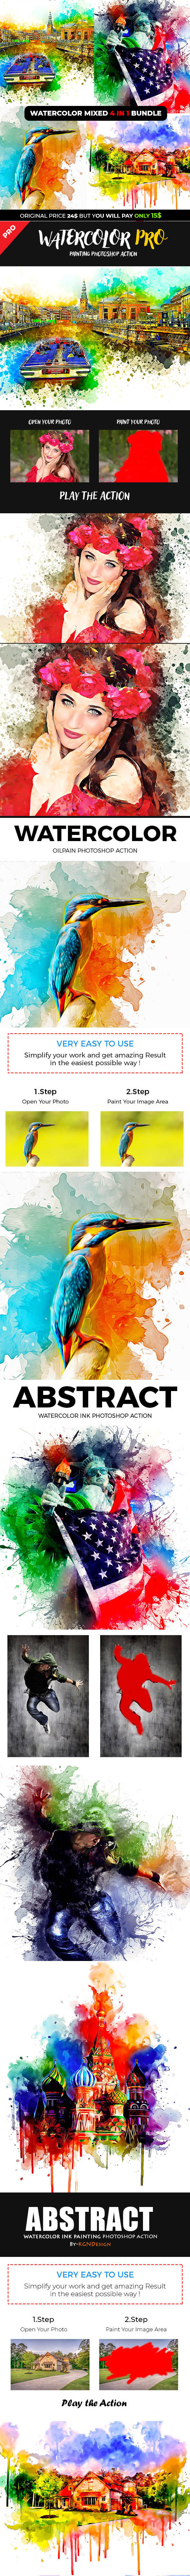 Watercolor Mixed 4 in 1 Photoshop Action Bundle - Photo Effects Actions